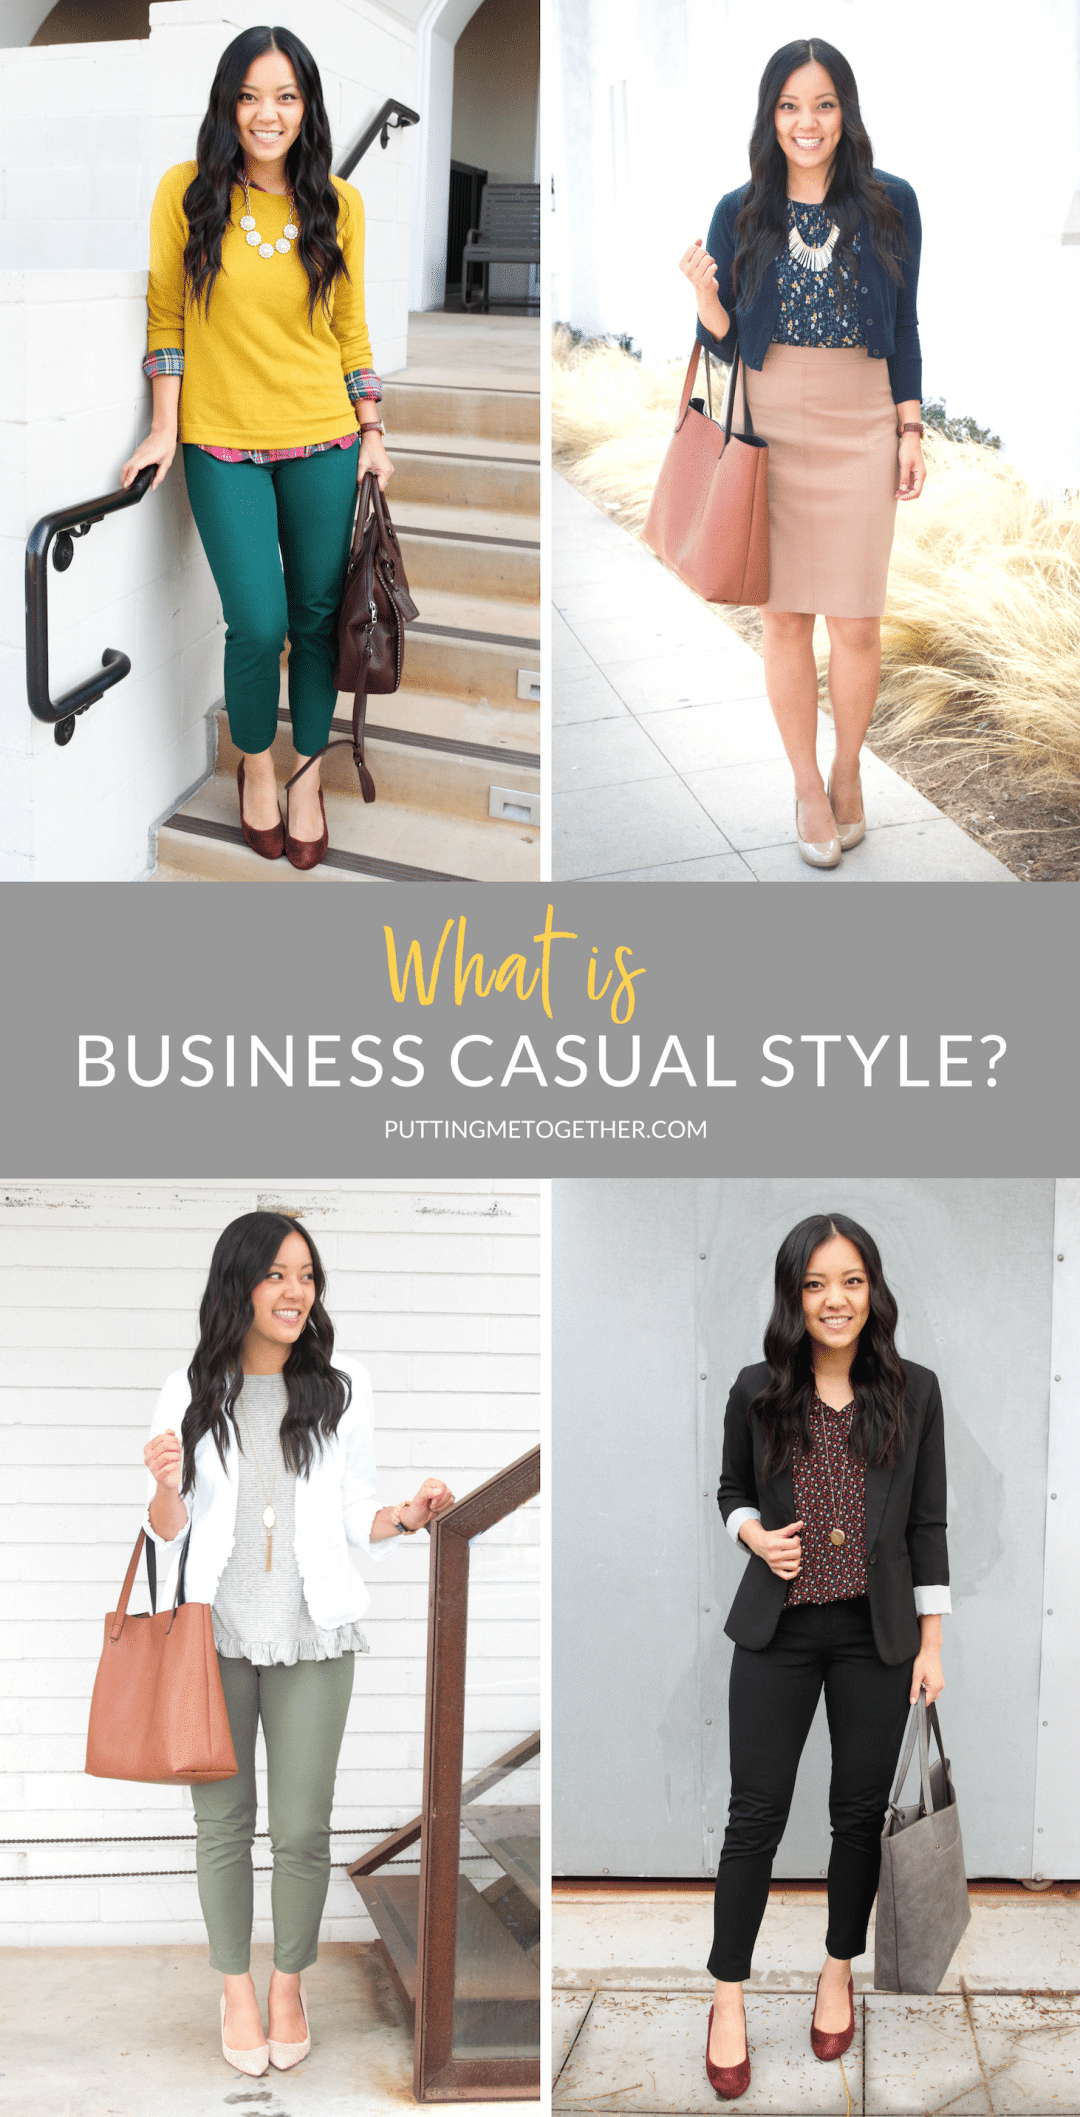 013d5312e74c3 Ohhh, business casual. There have been so many questions about this that I  can't even keep track of them all now! From wondering what is business  casual ...